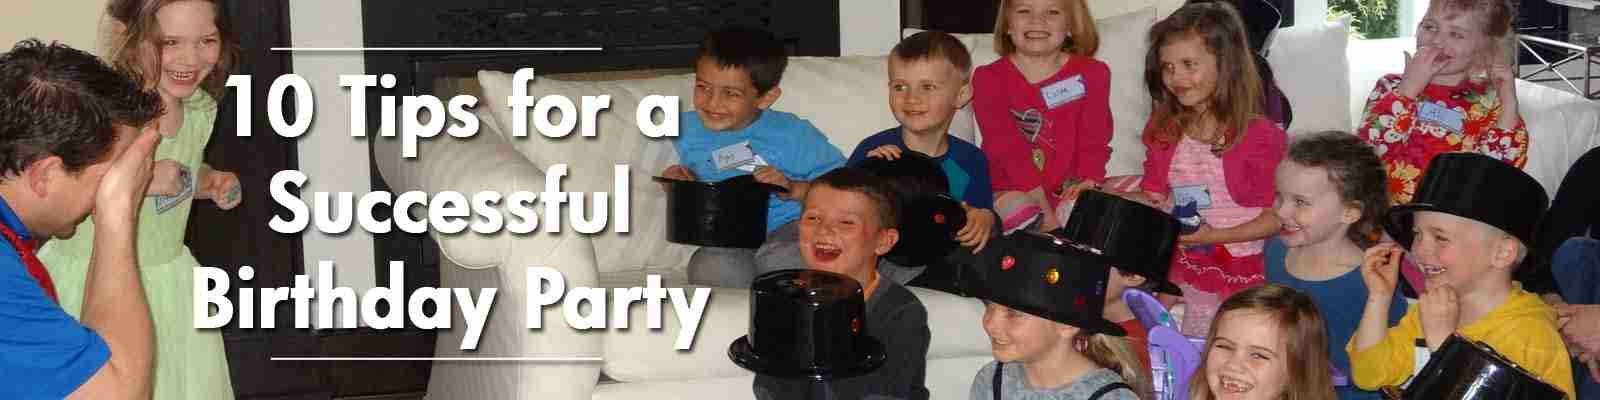 Top 10 Tips for a Successful Birthday Party